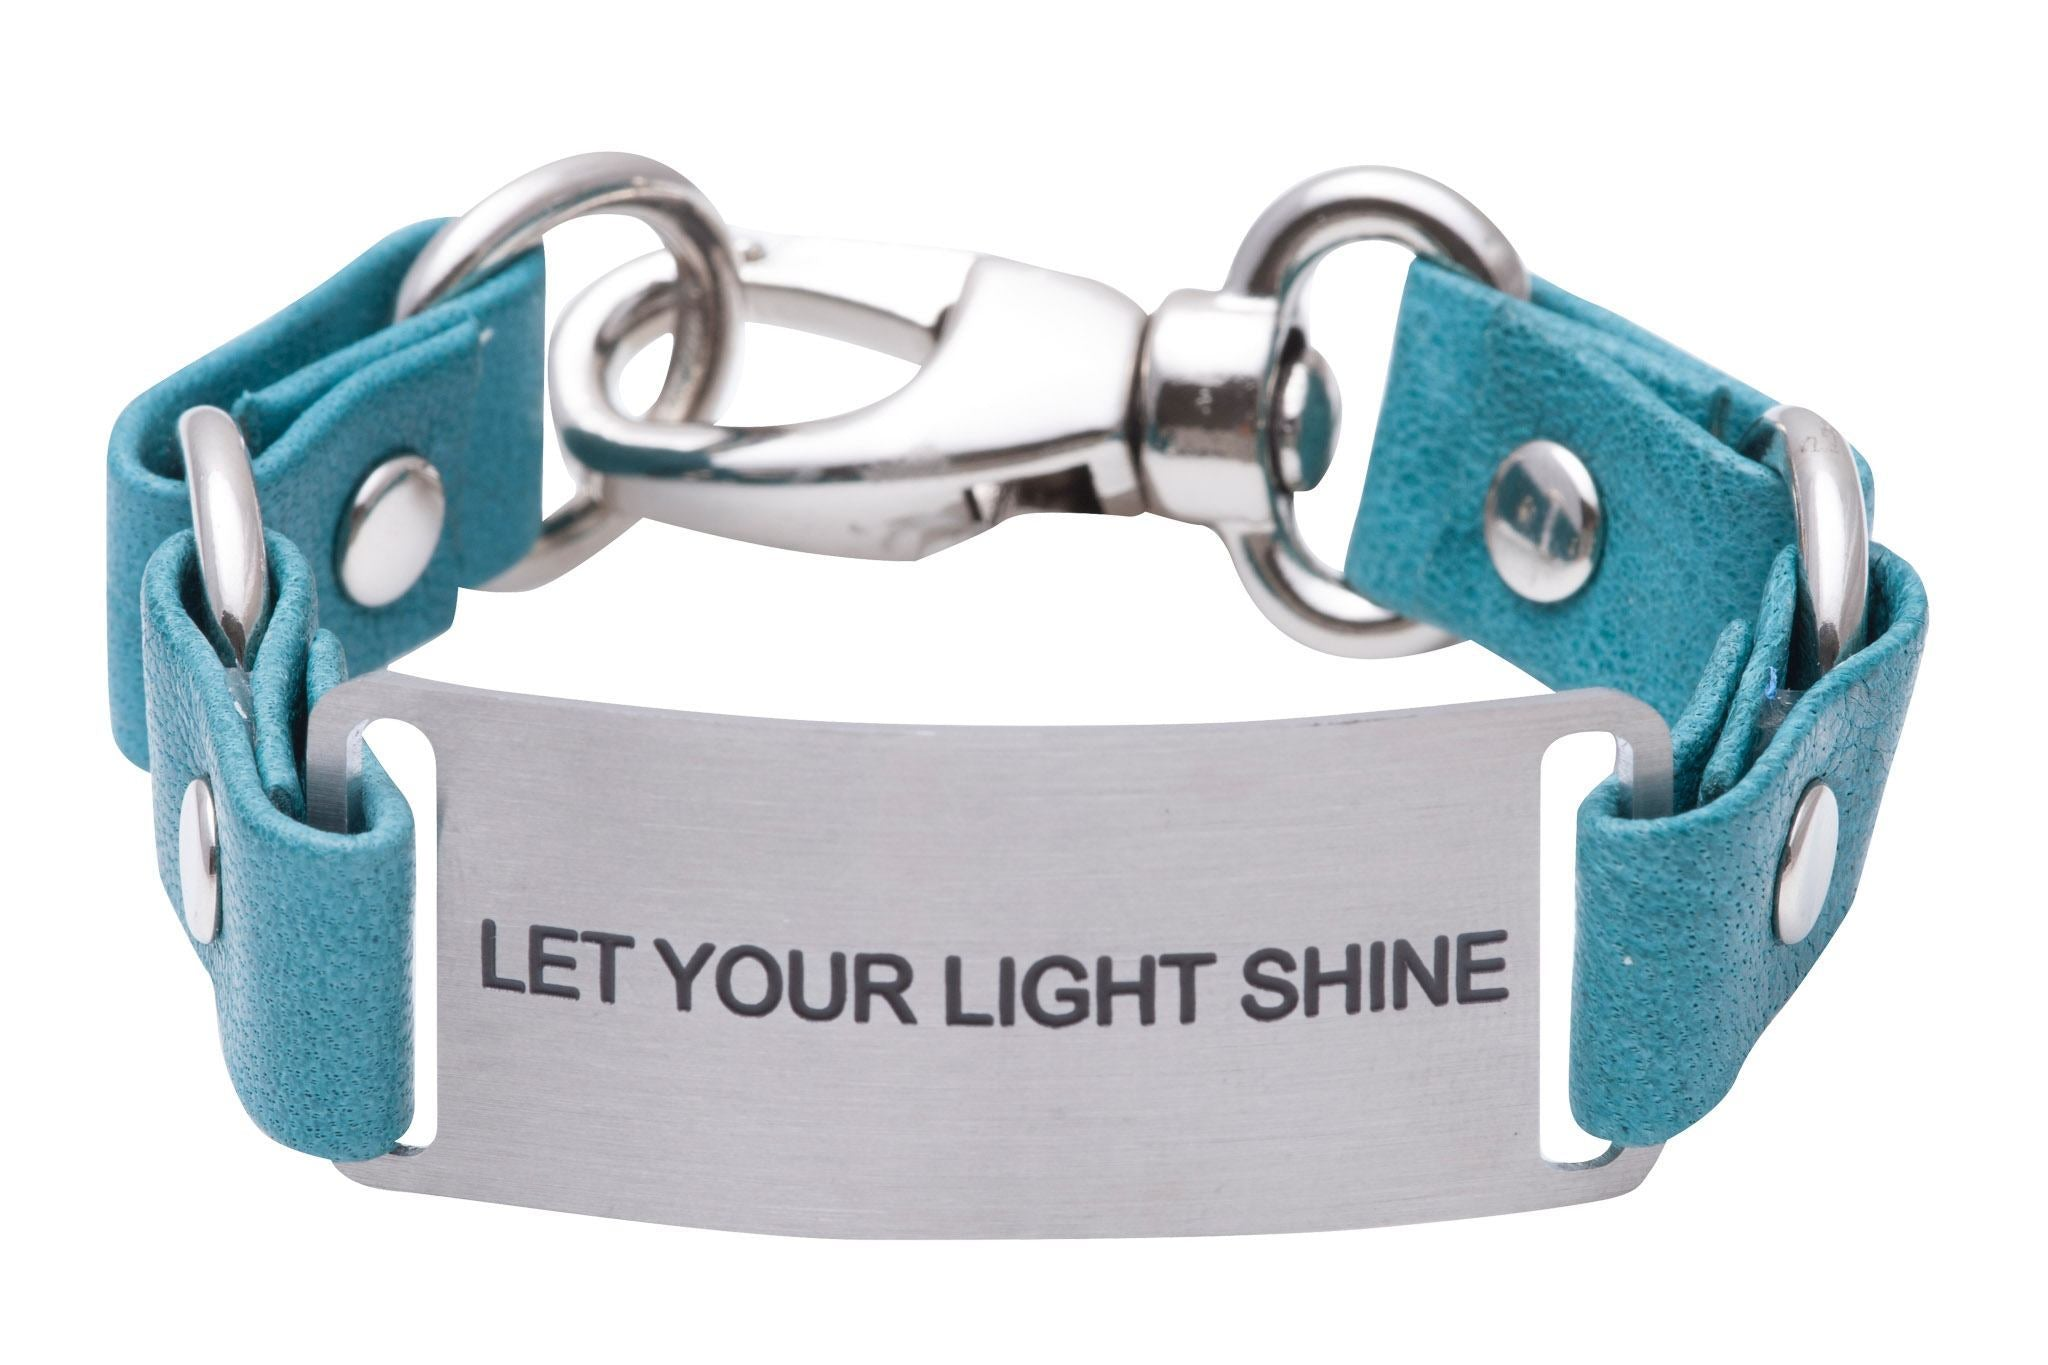 Load image into Gallery viewer, Message Bracelet Turquoise Leather Let Your Light Shine